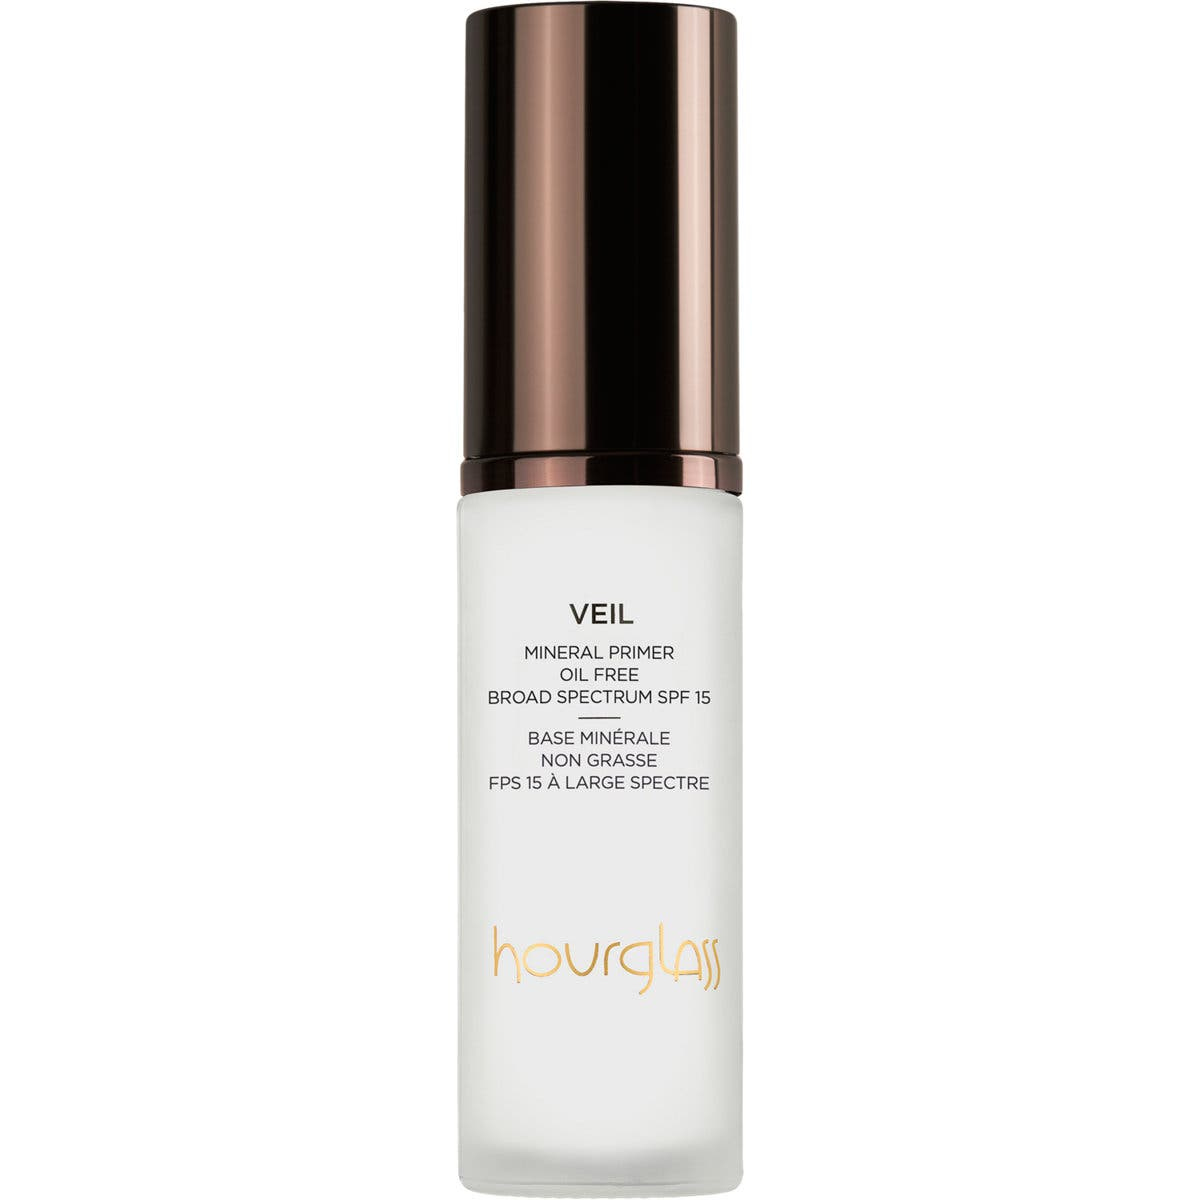 Whether you have dry, combination or oily skin, wearing a primer as a base for your makeup is essential.